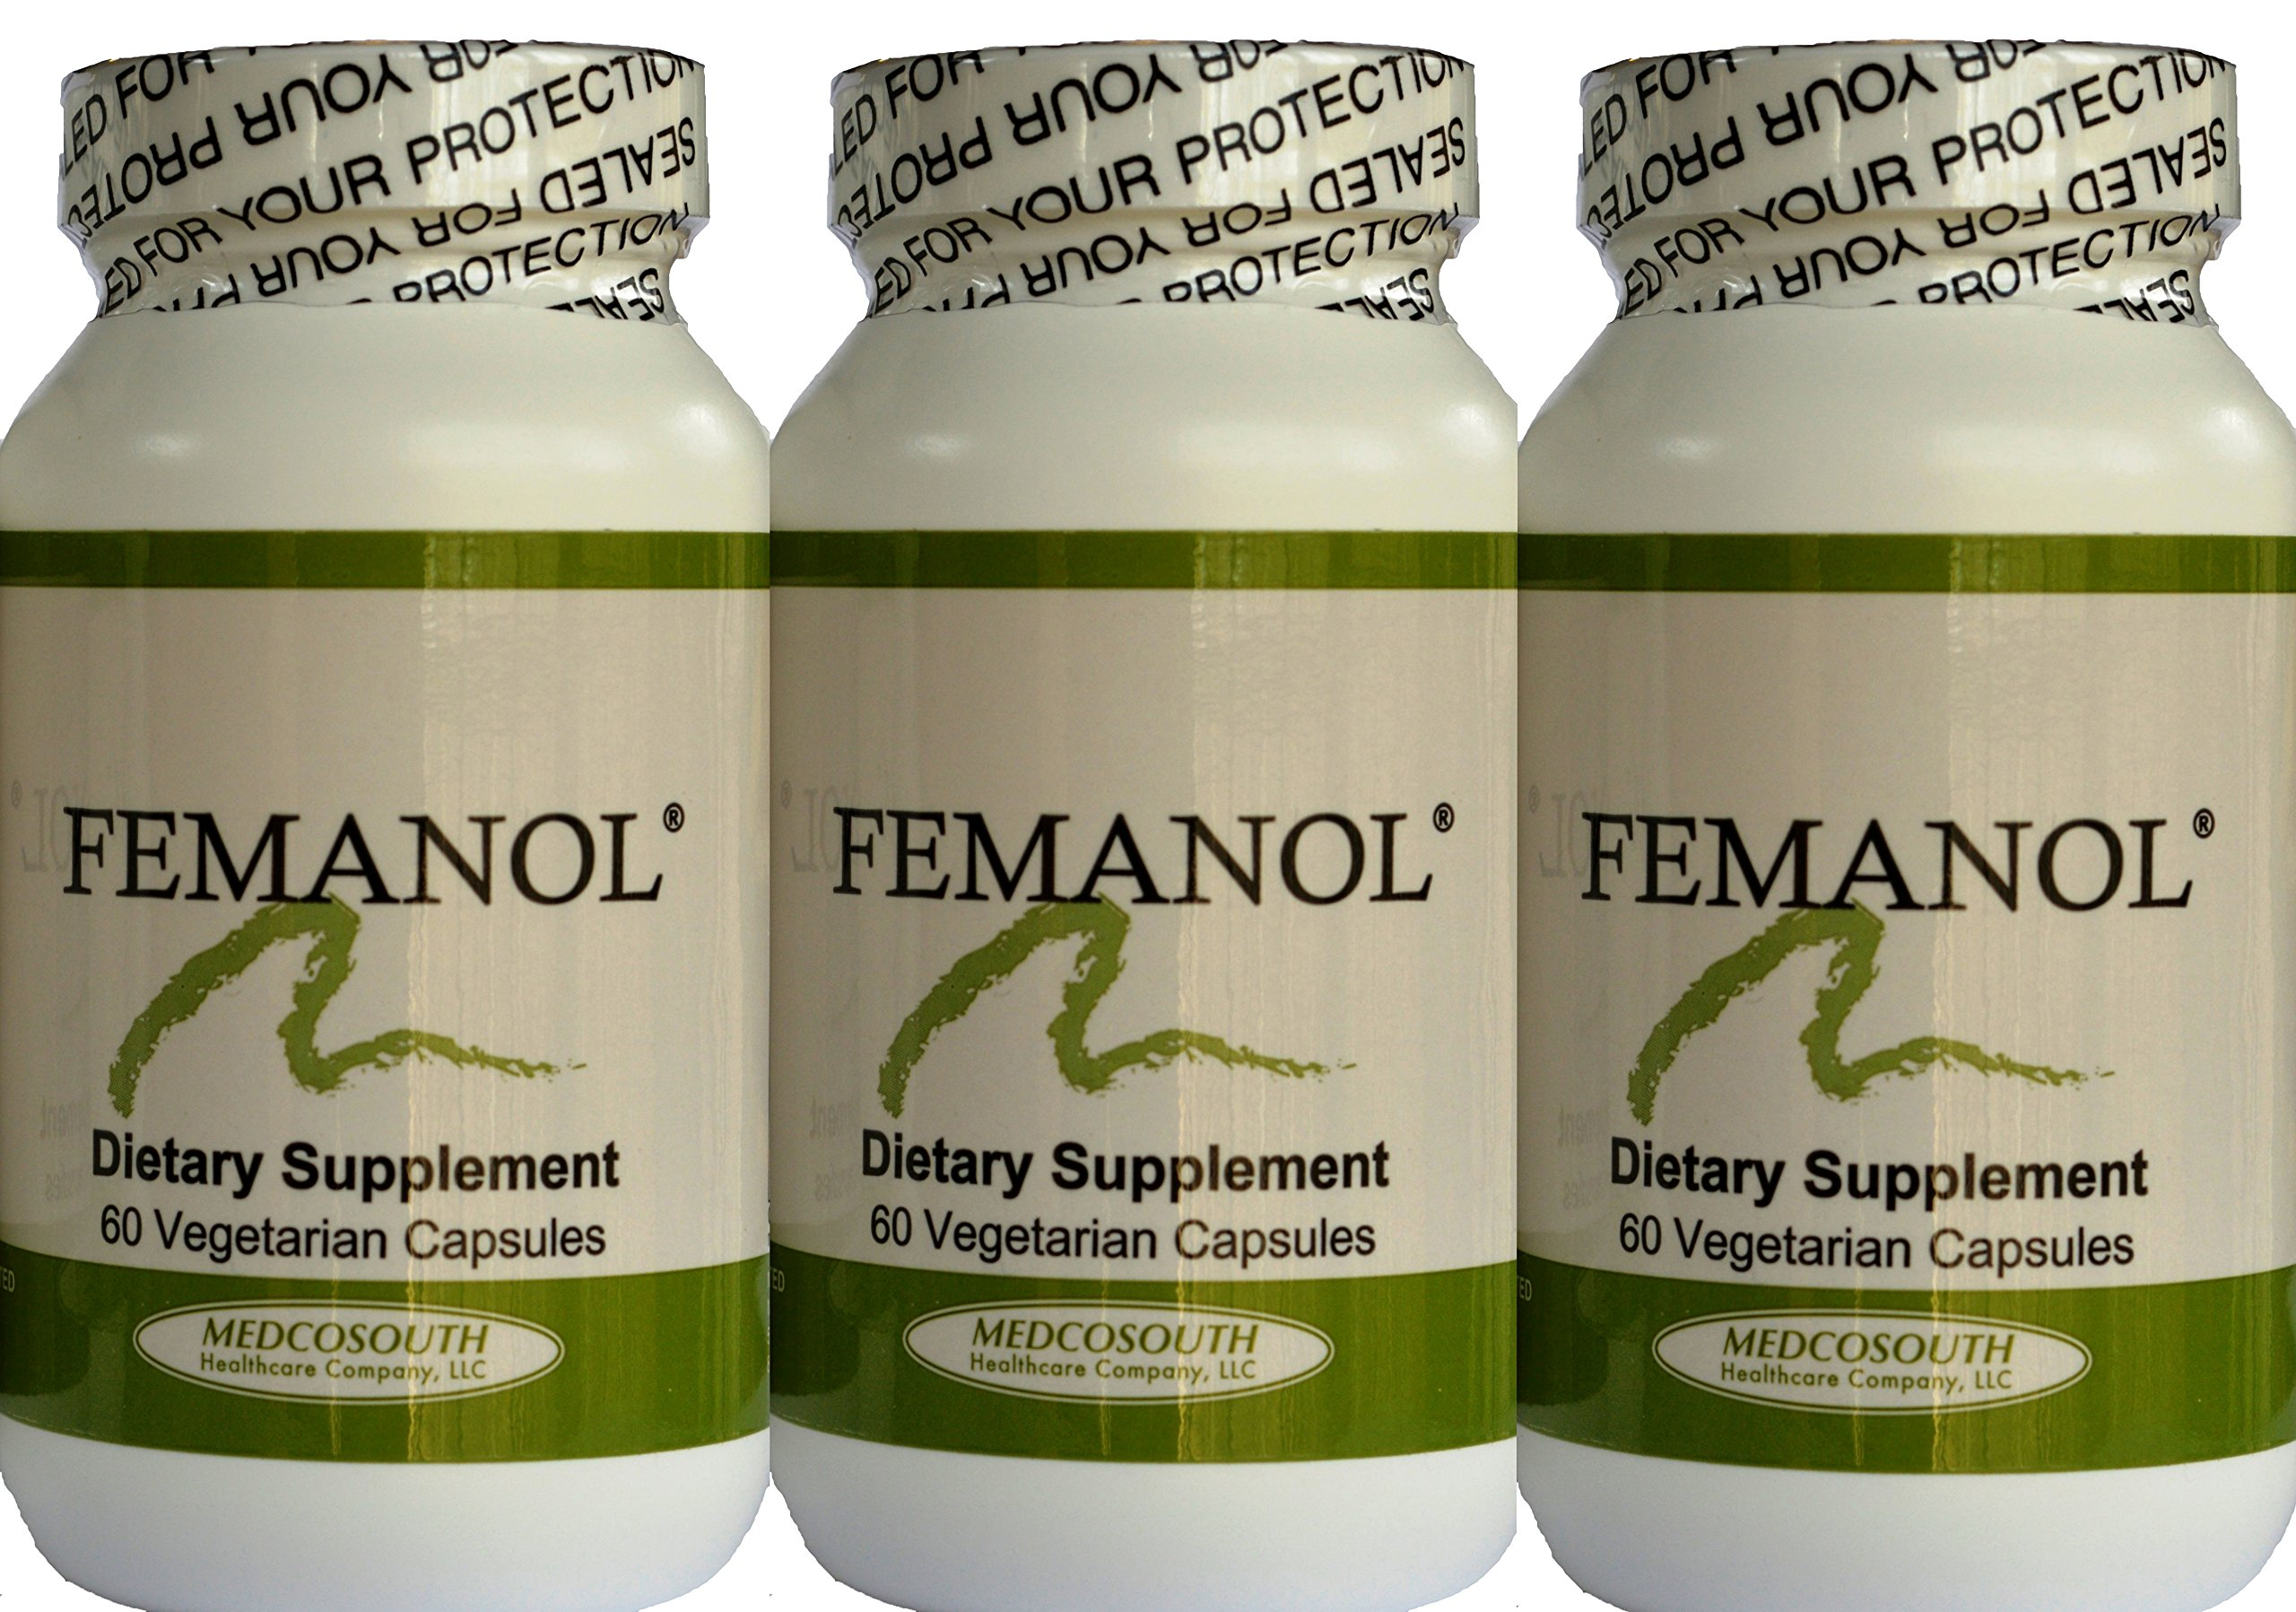 Femanol (3) Bottles 60/count Supports Normal Healthy Feminine and Vaginal Odor